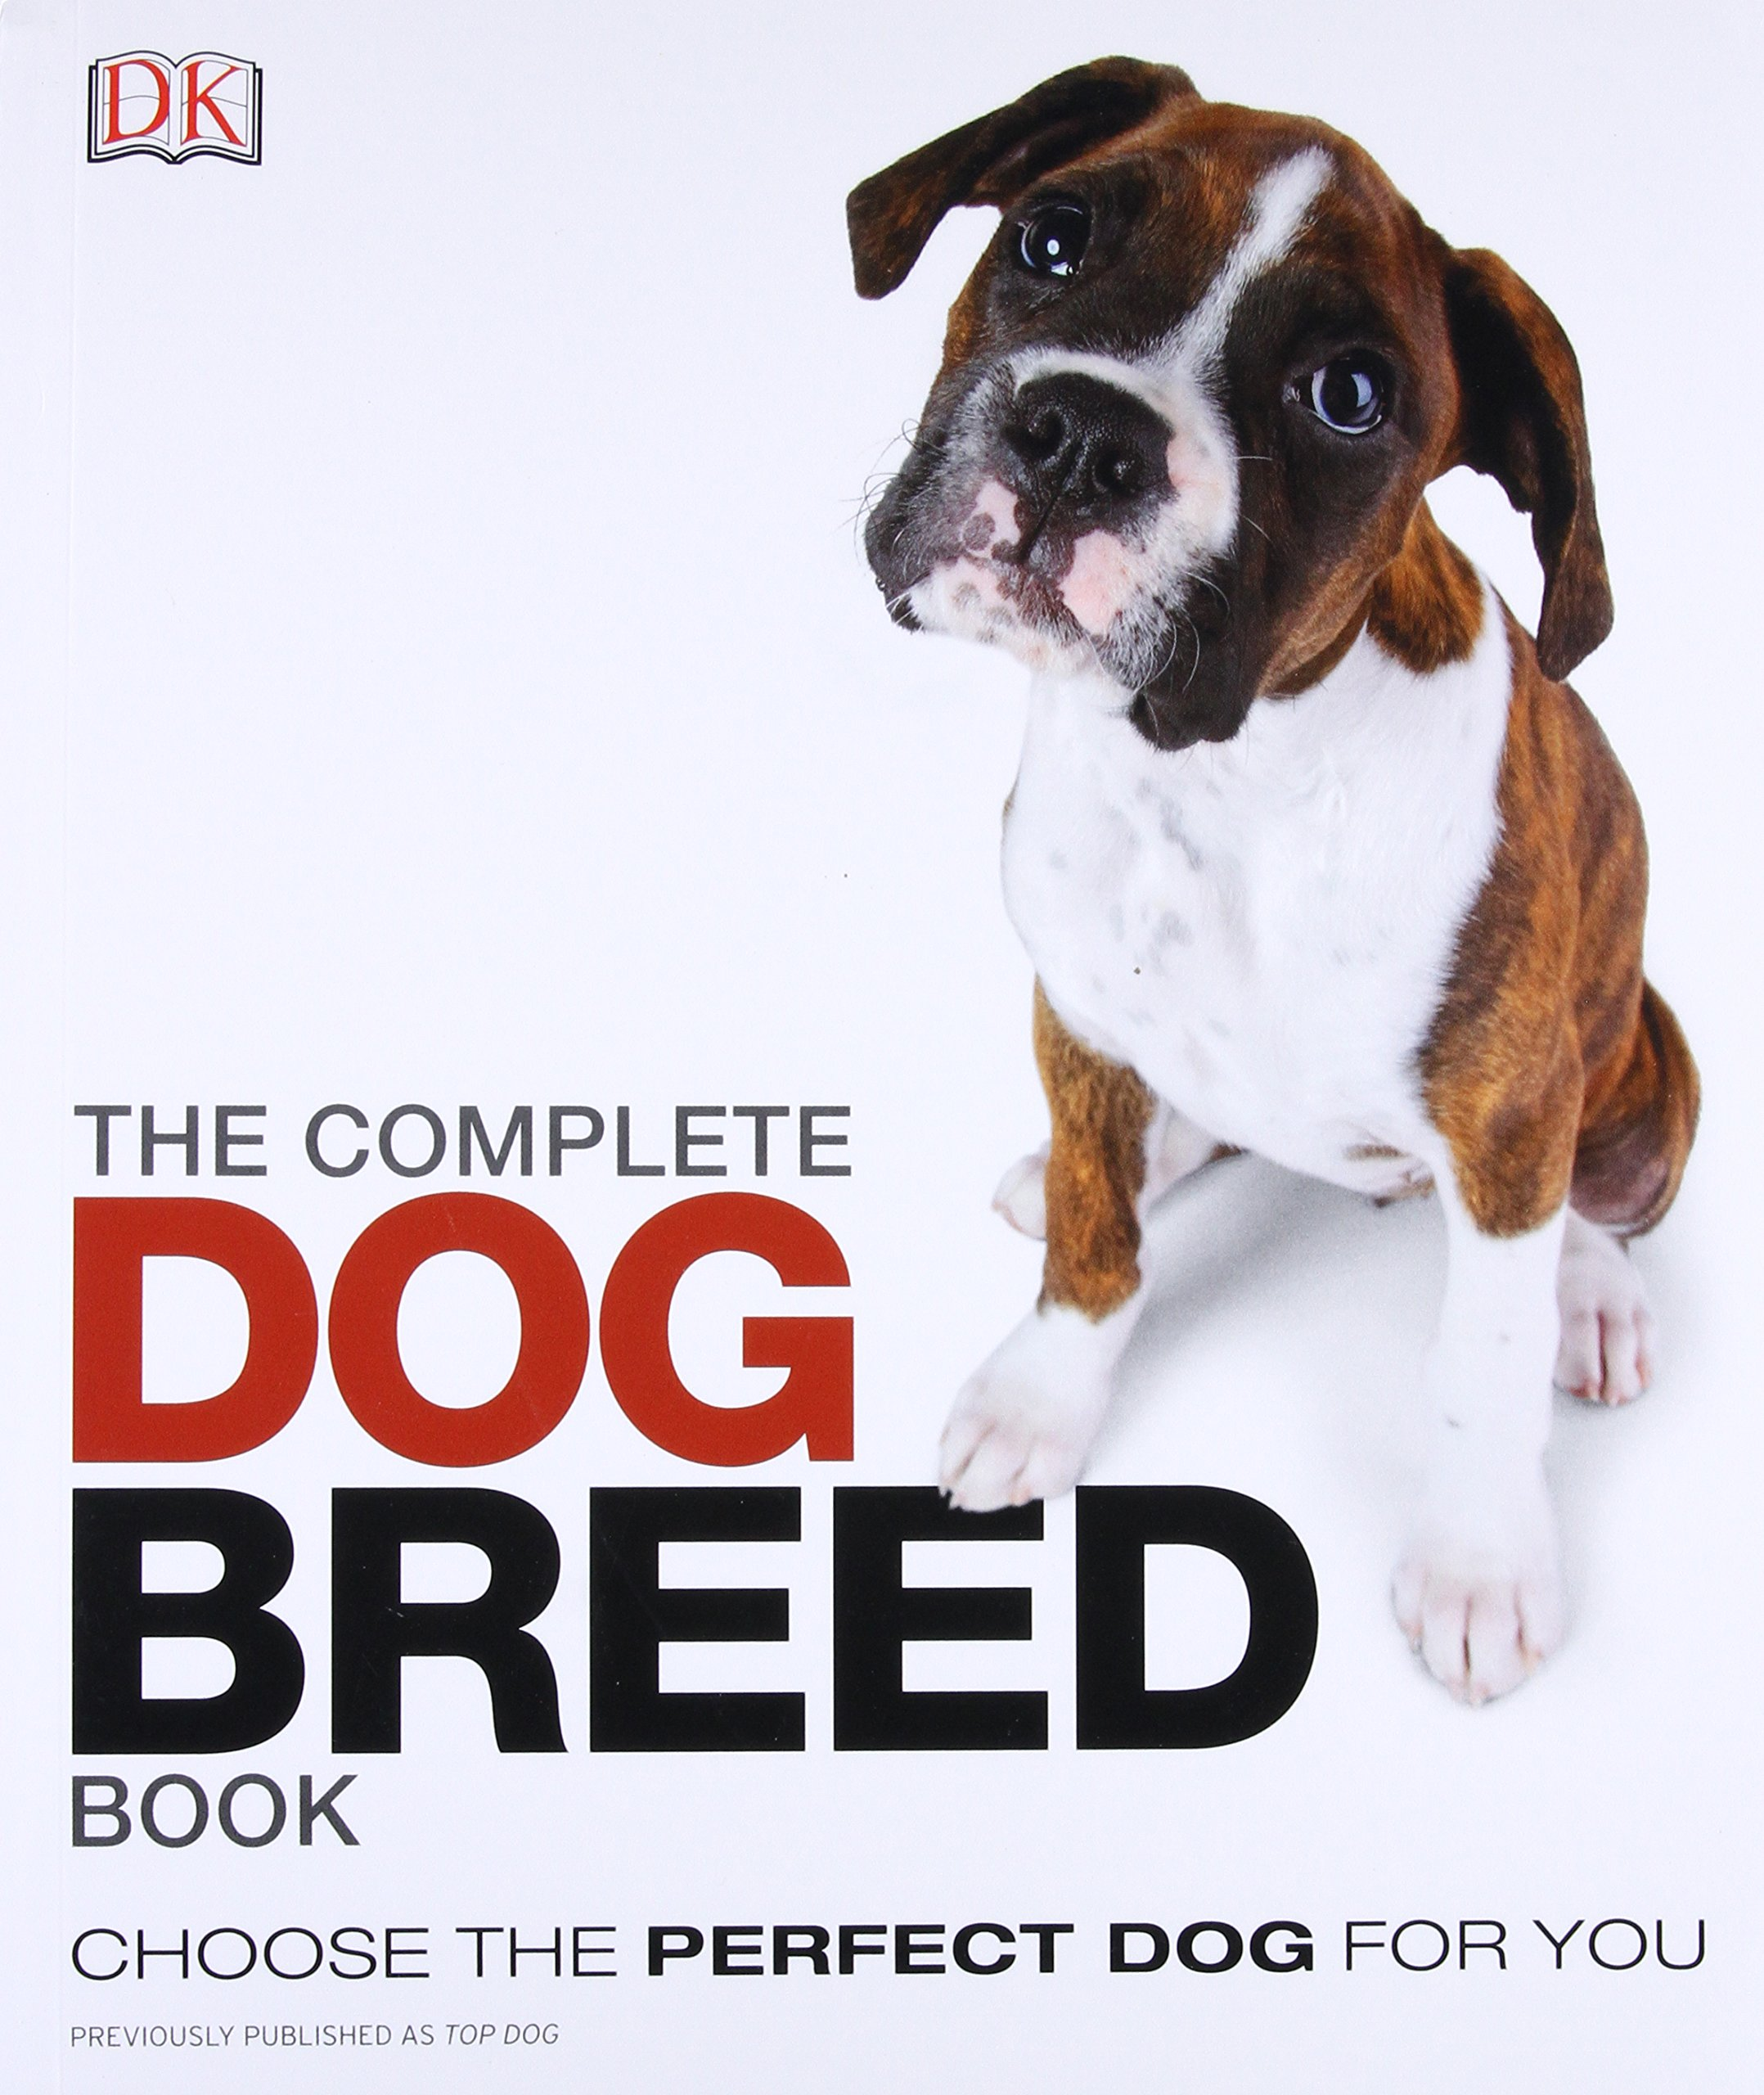 Complete Dog Breed Book product image